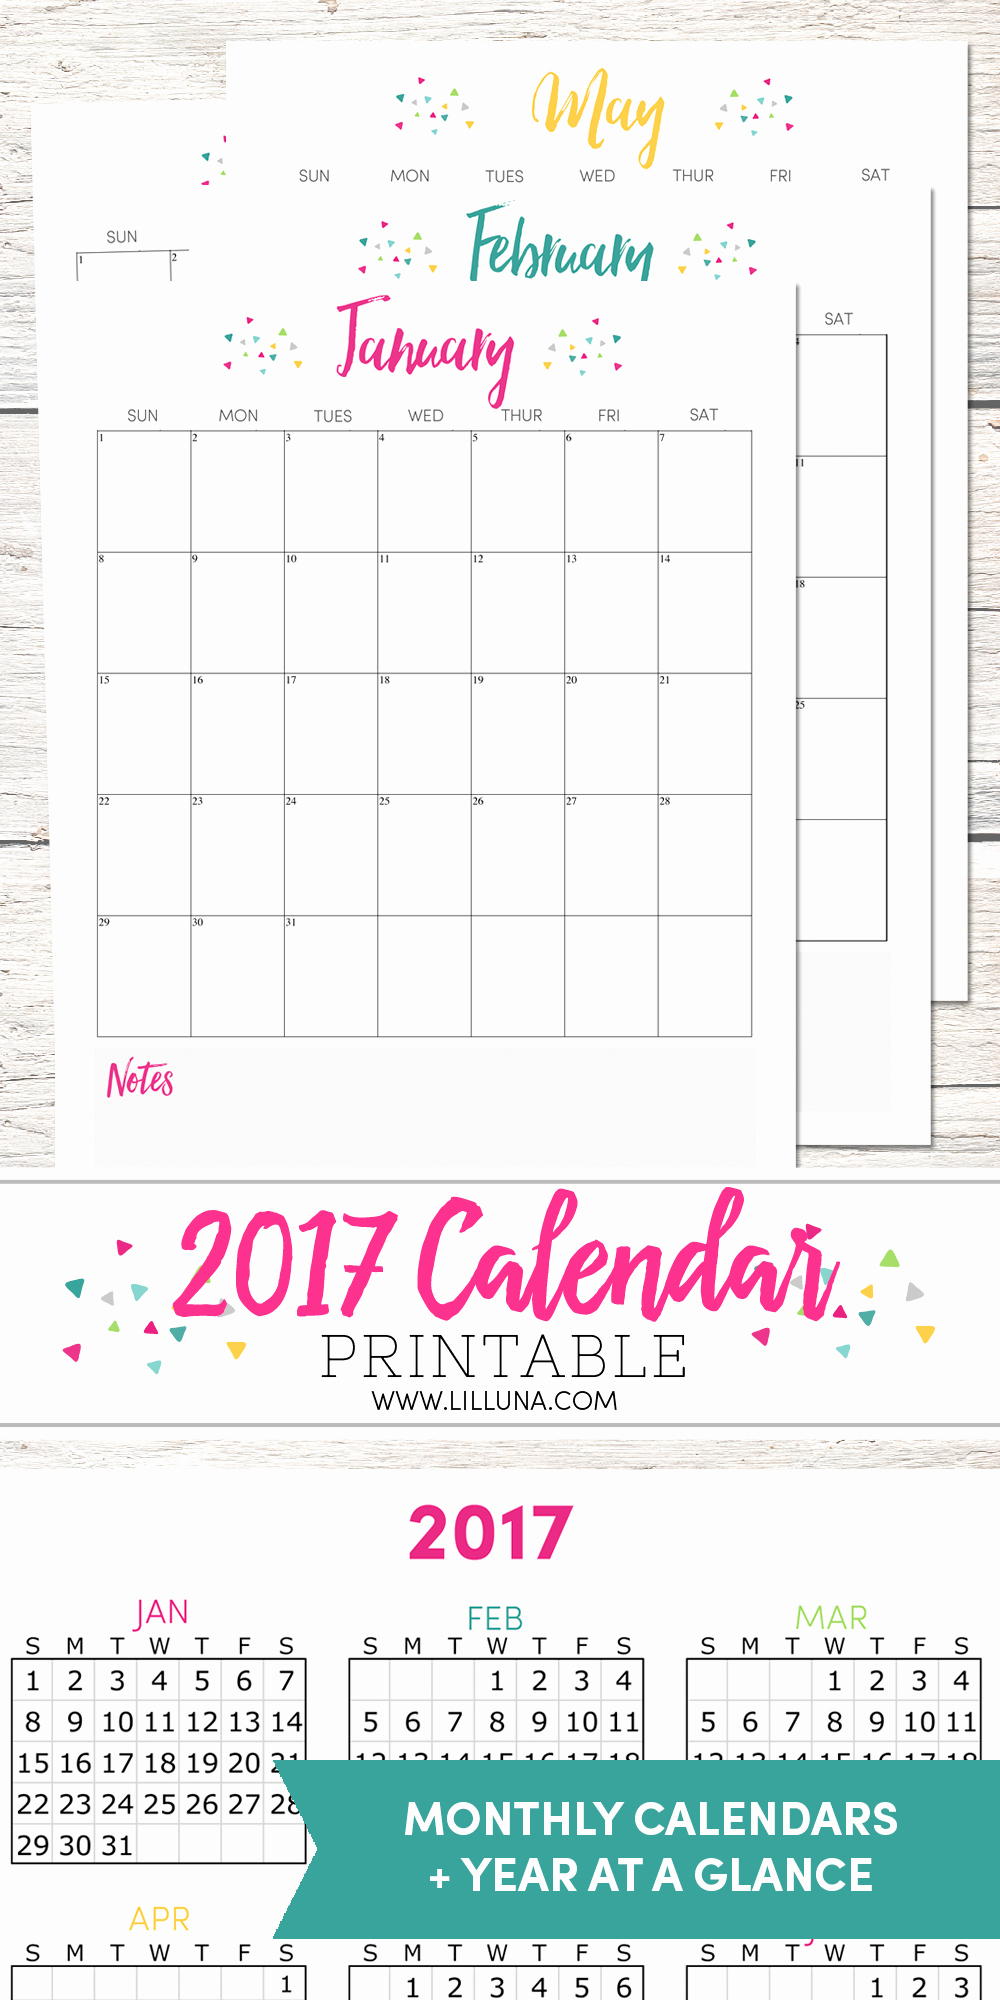 2017 Calendar Template with Notes New Free 2017 Calendar